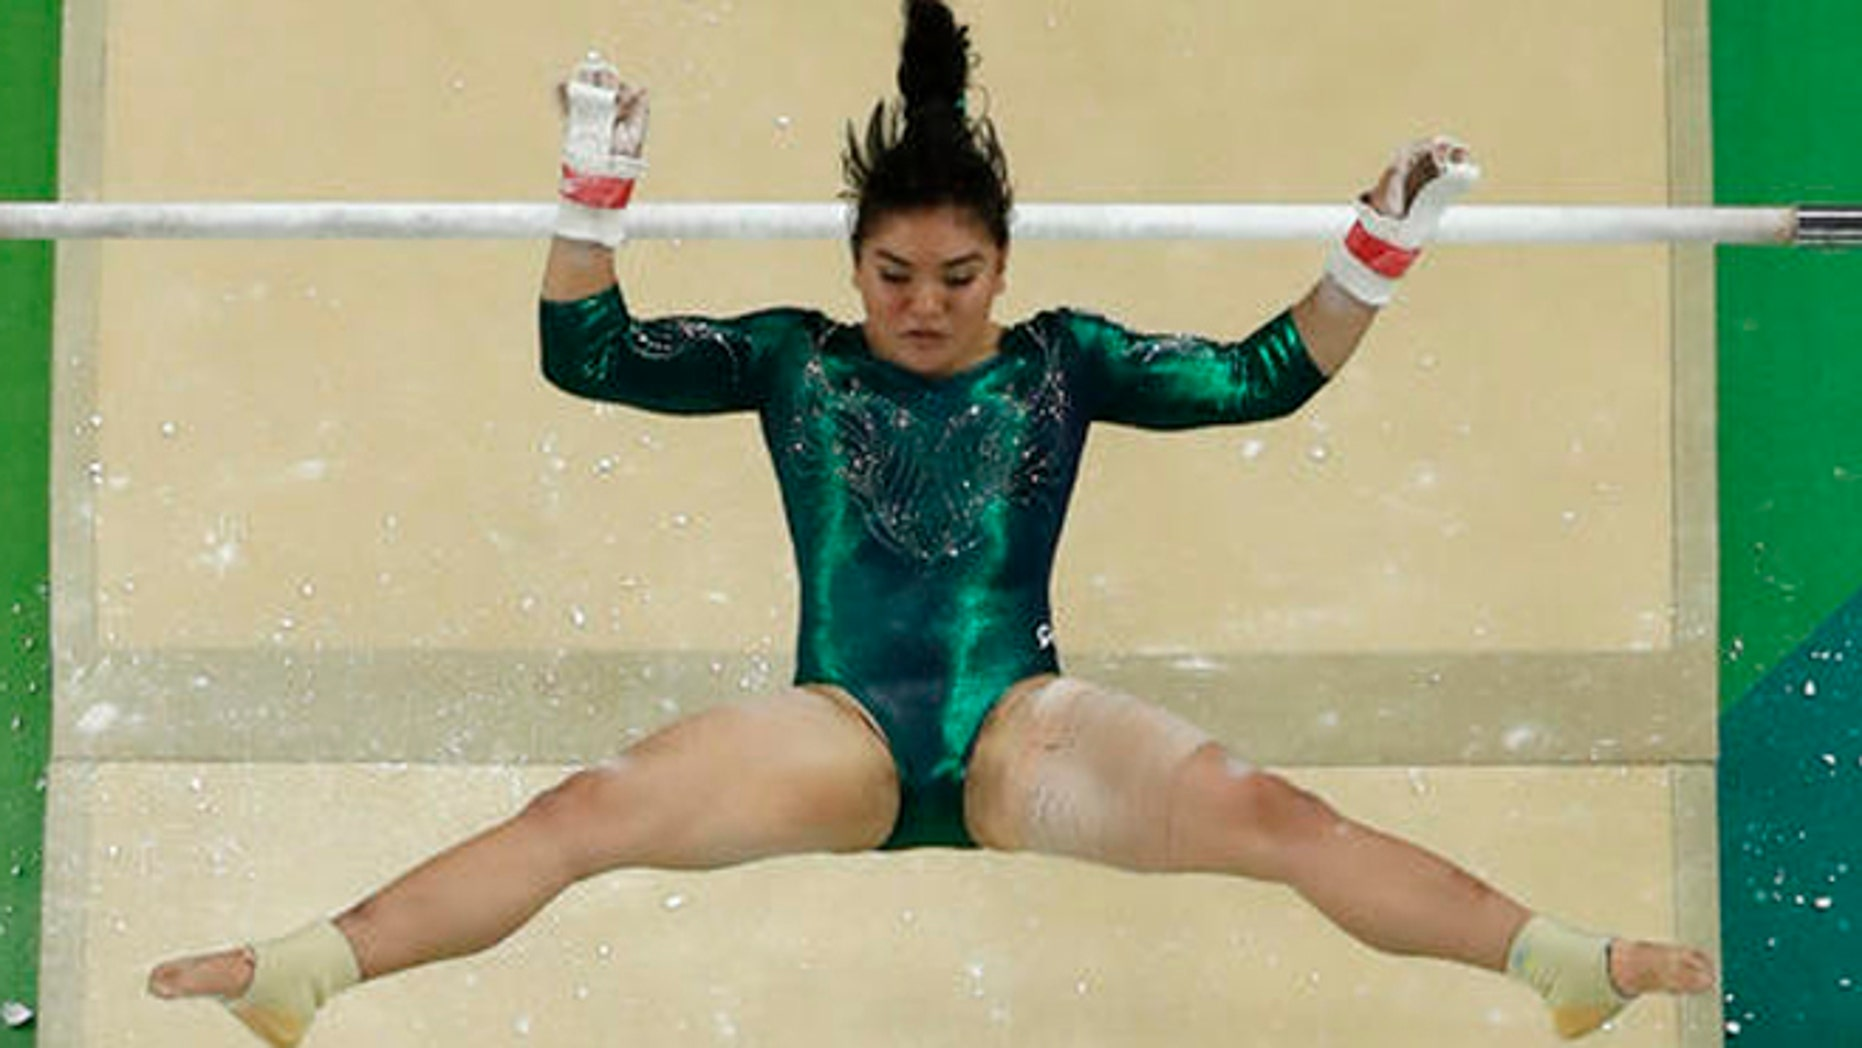 Mexico's Alexa Moreno performs on the uneven bars during the artistic gymnastics women's qualification at the 2016 Summer Olympics in Rio de Janeiro, Brazil, Sunday, Aug. 7, 2016. (AP Photo/Morry Gash)